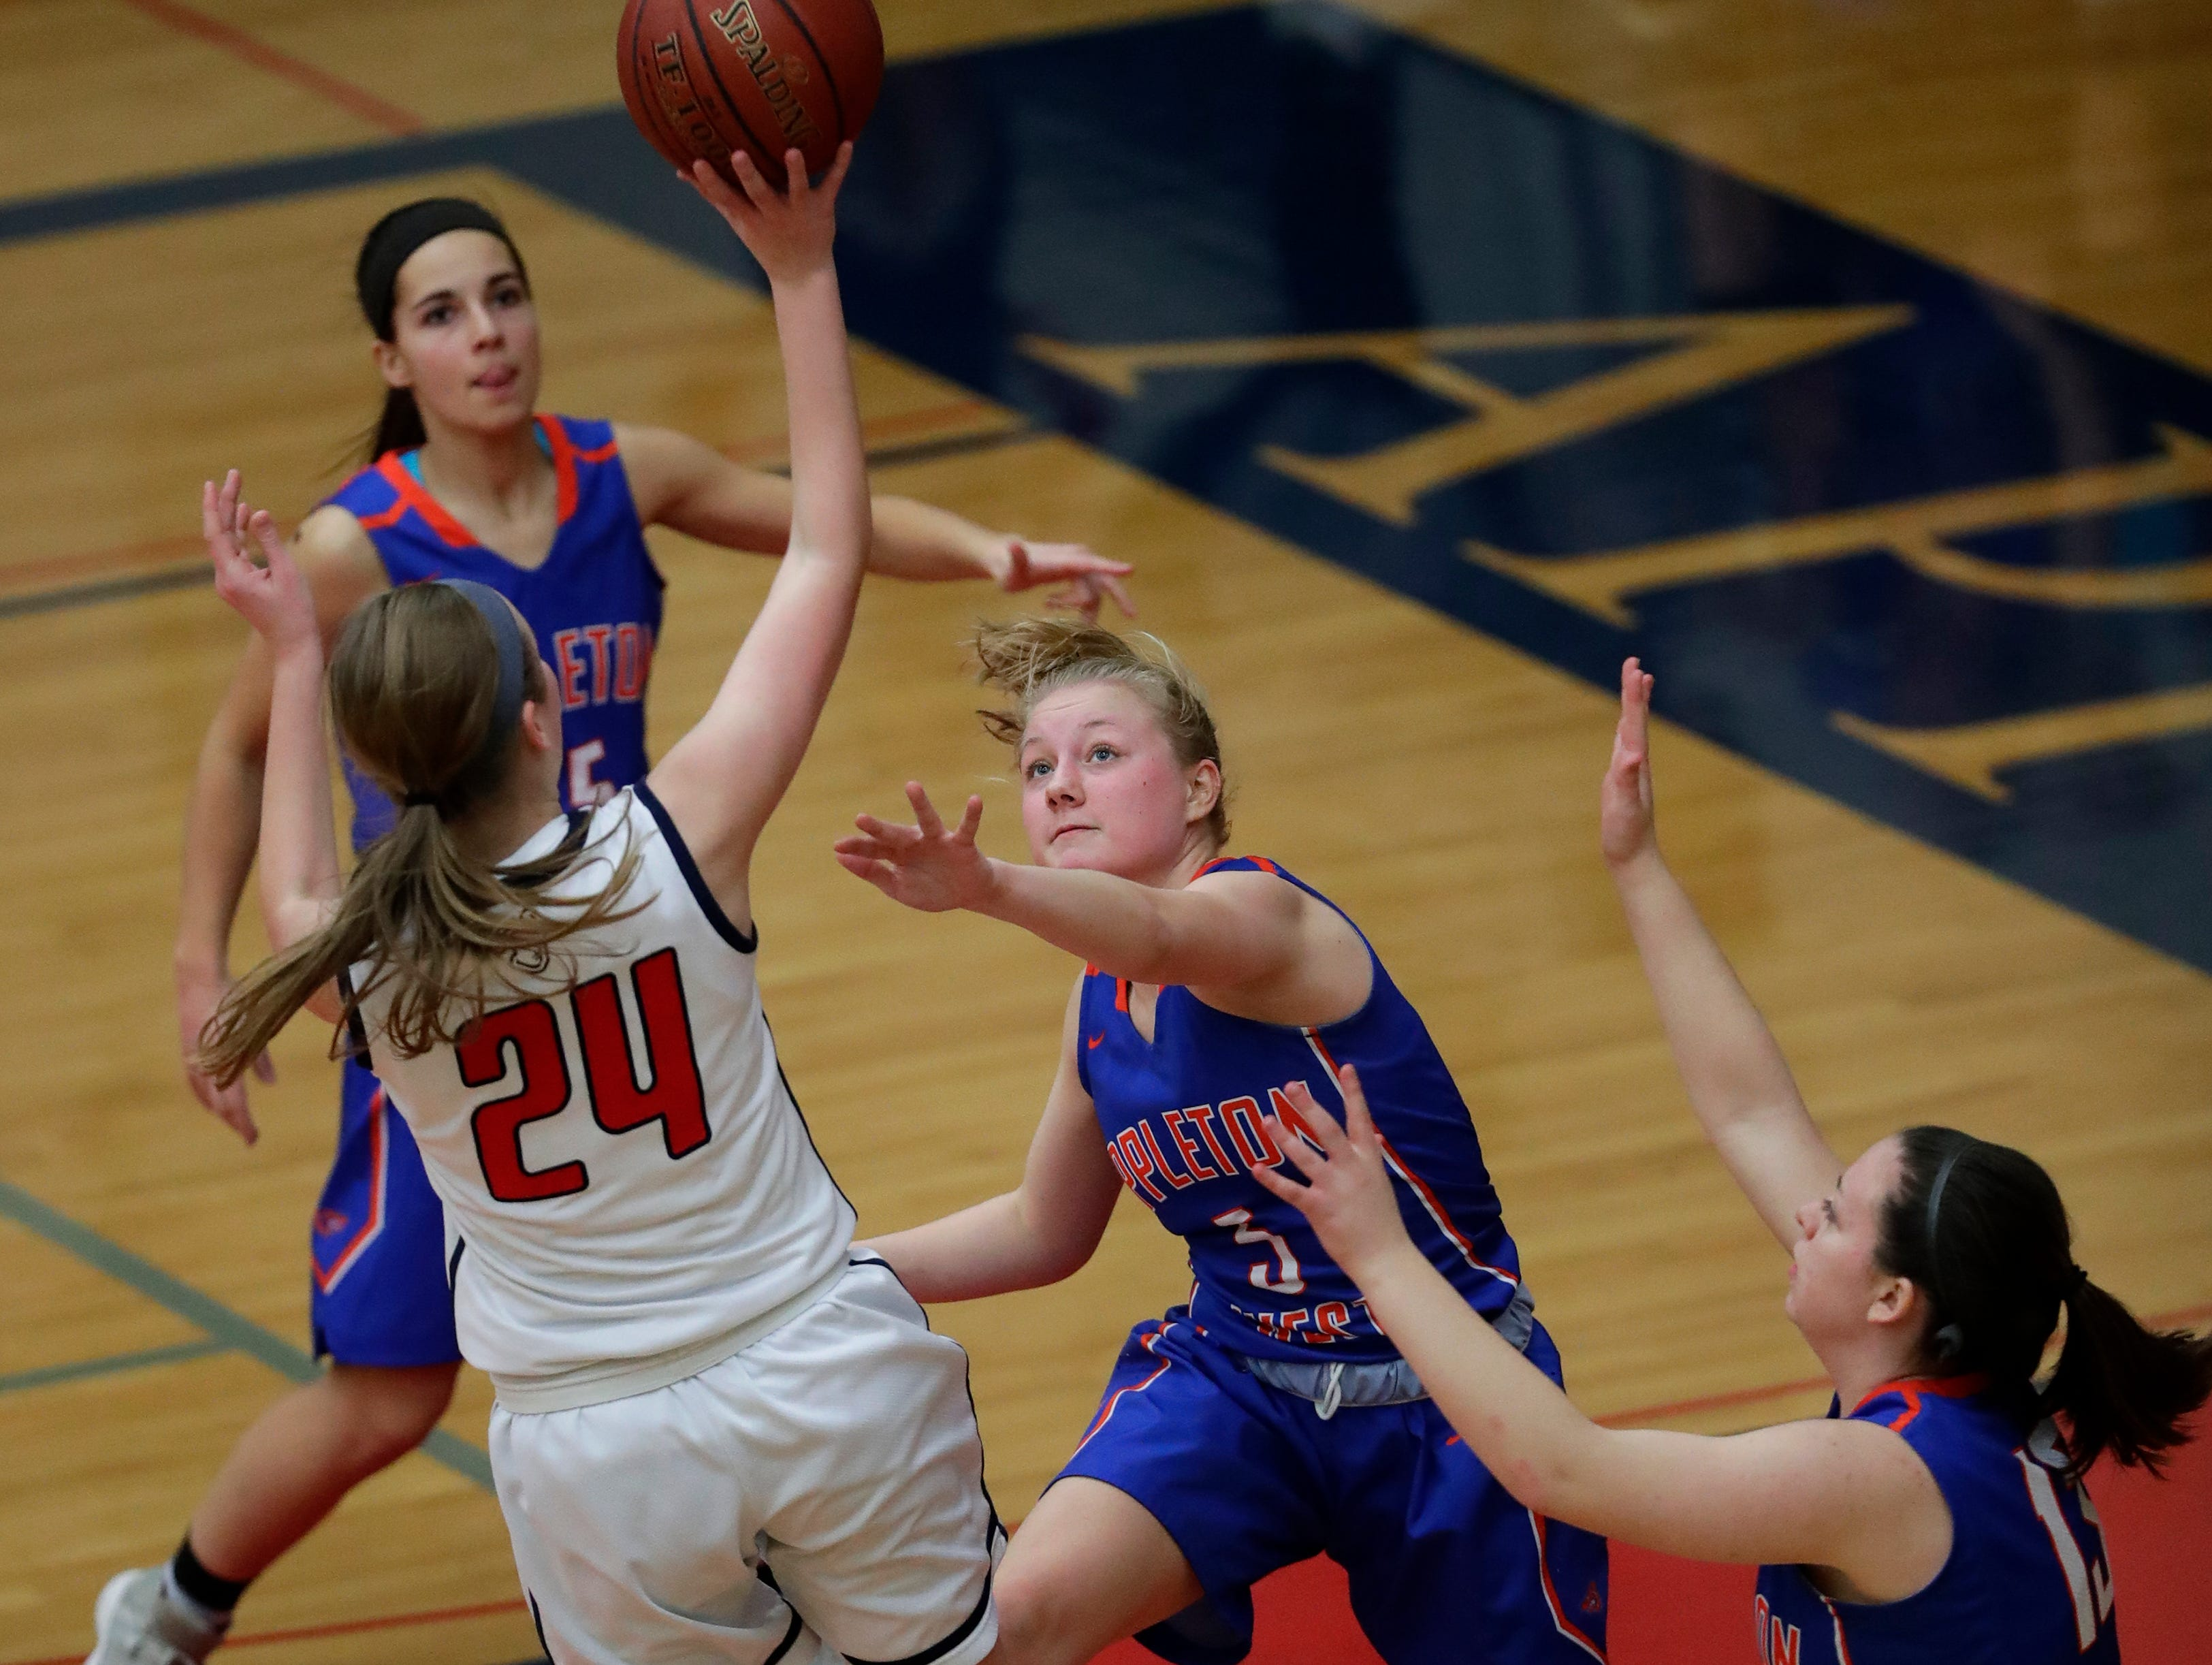 Appleton East High School's Delaney Clark (24) puts up a shot against Appleton West High School's Bree Workman (5) during their girls basketball game Friday, January 11, 2019, at Appleton East High School in Appleton, Wis. 